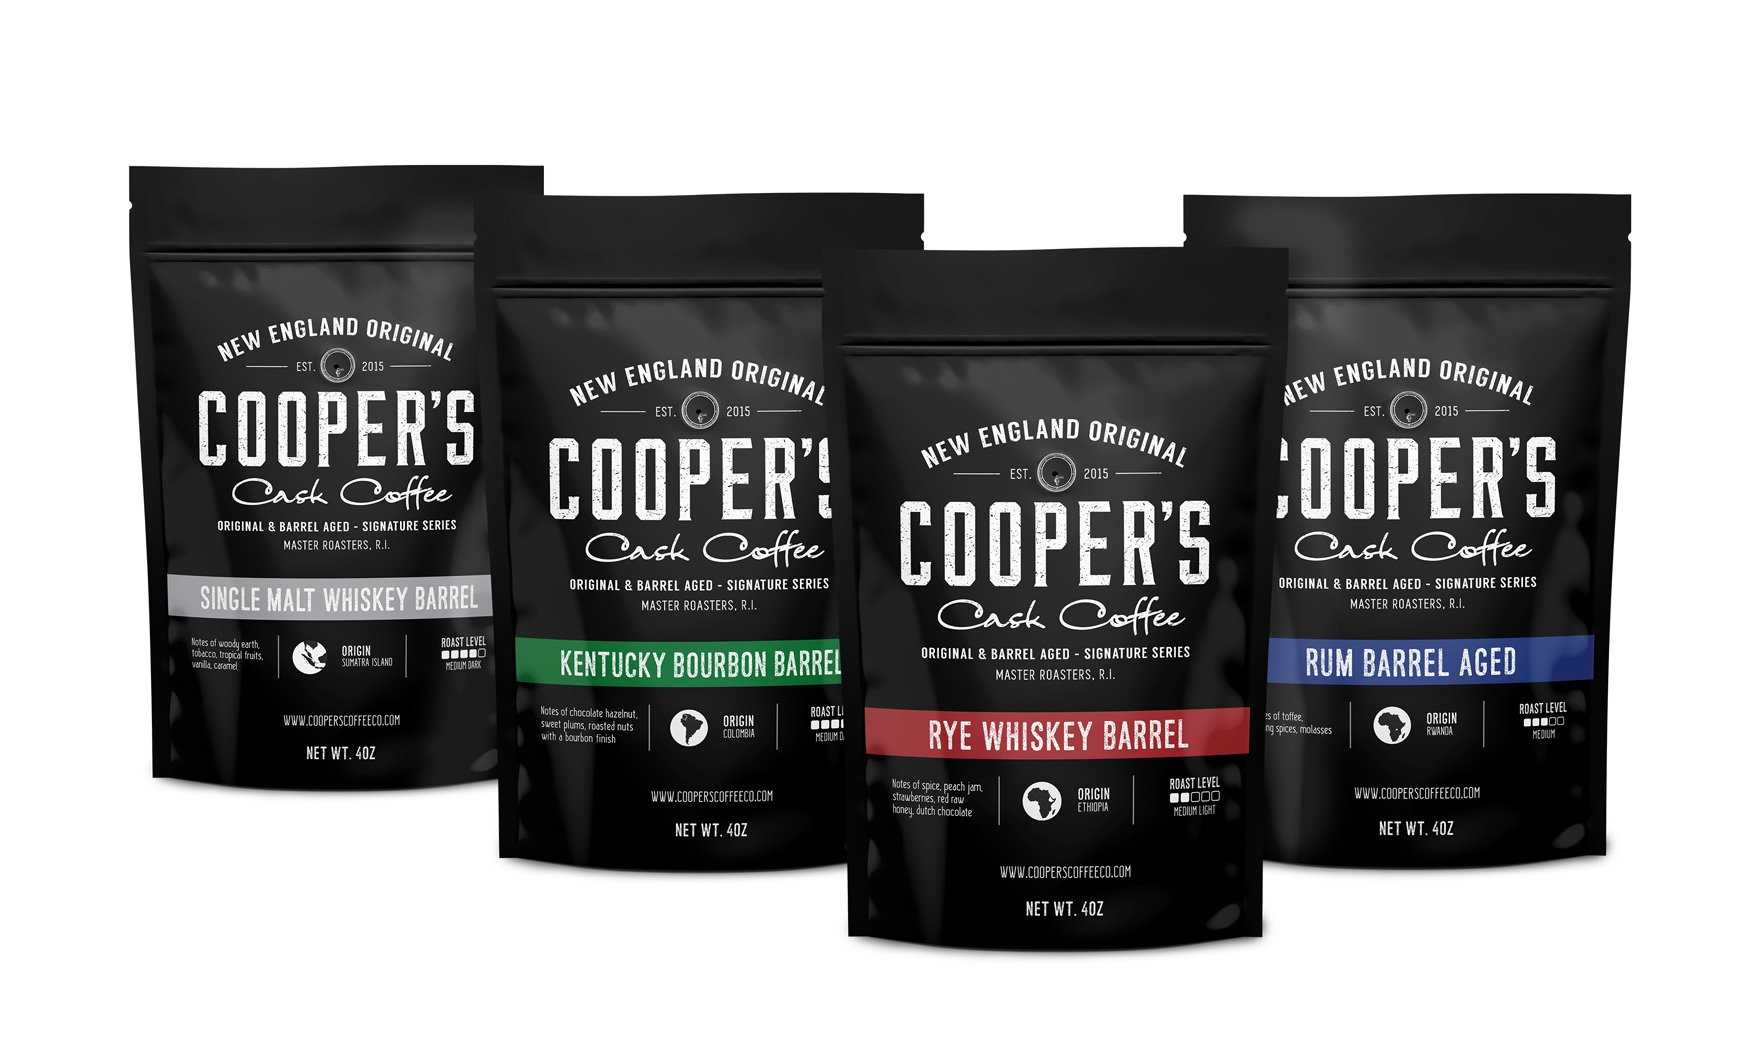 Bourbon, Whiskey & Rum Barrel Aged Coffee, 4 Bags Gift Box Coffee Sampler Set 16oz - Single Origin Sumatra Whiskey, Ethiopian Rye, Rwanda Rum Roasted Coffee Beans, Total 16oz by COOPER'S Cask Coffee